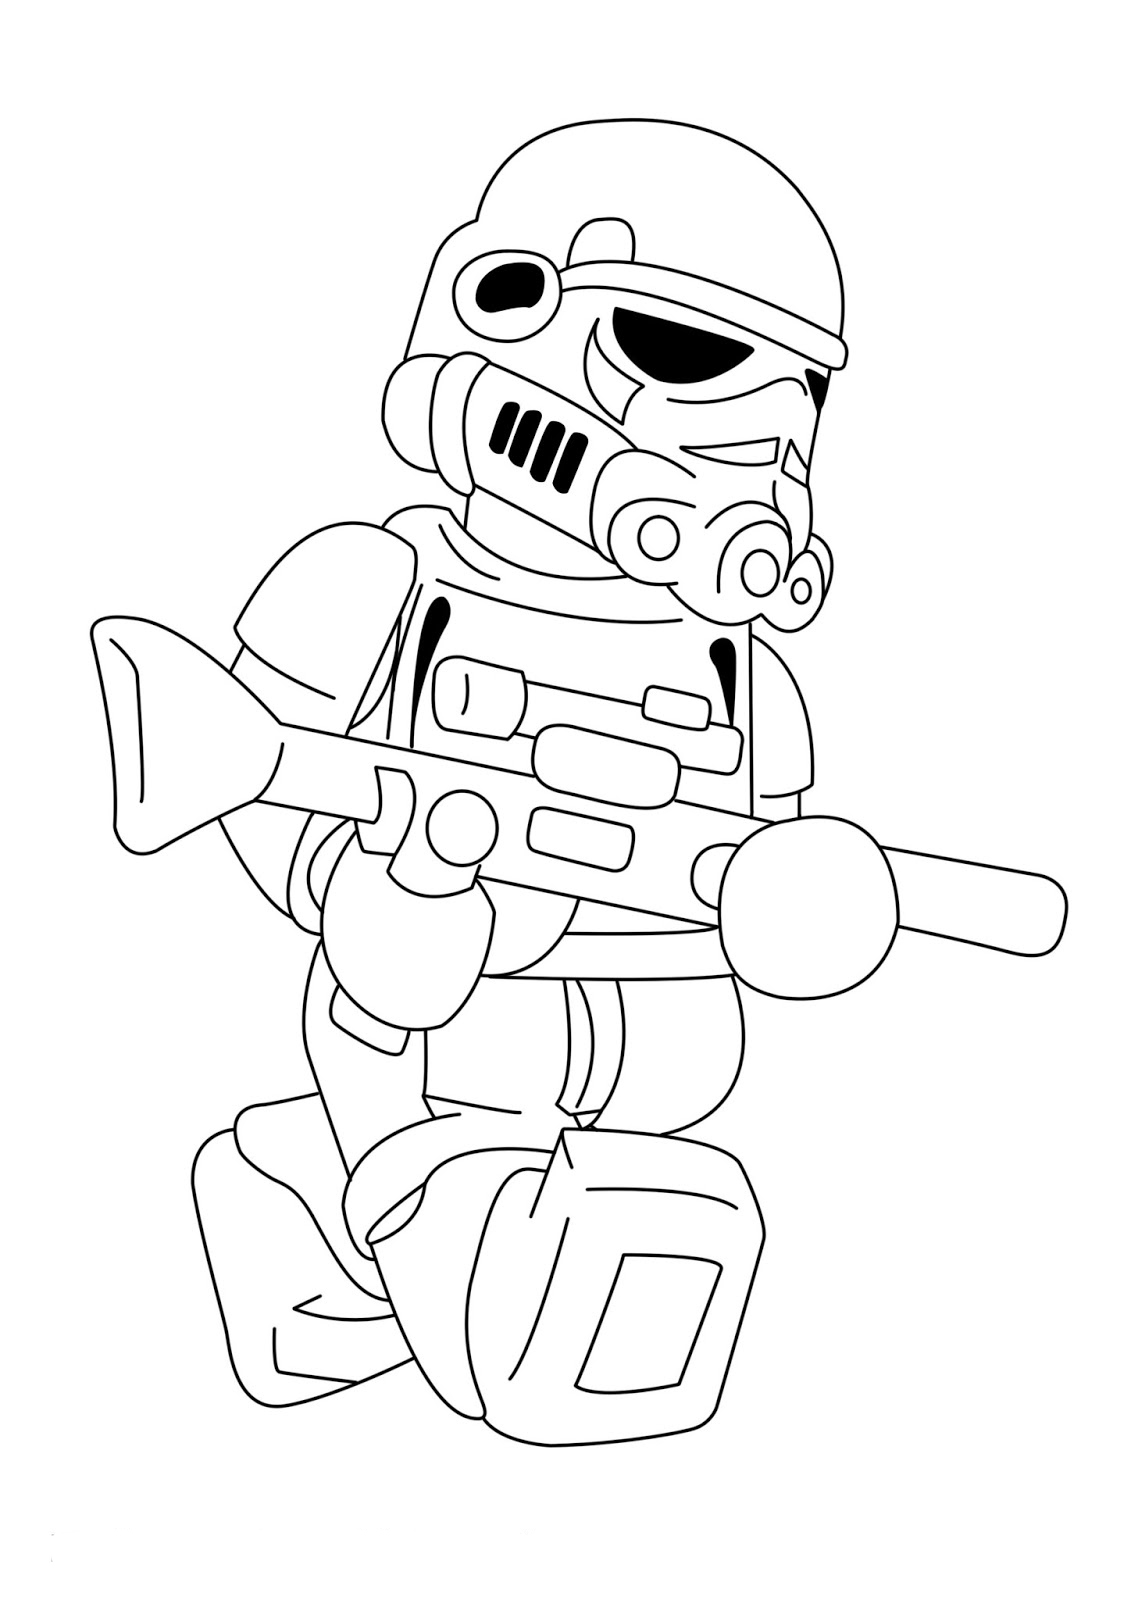 lego colouring in pictures lego coloring pages with characters chima ninjago city colouring pictures lego in